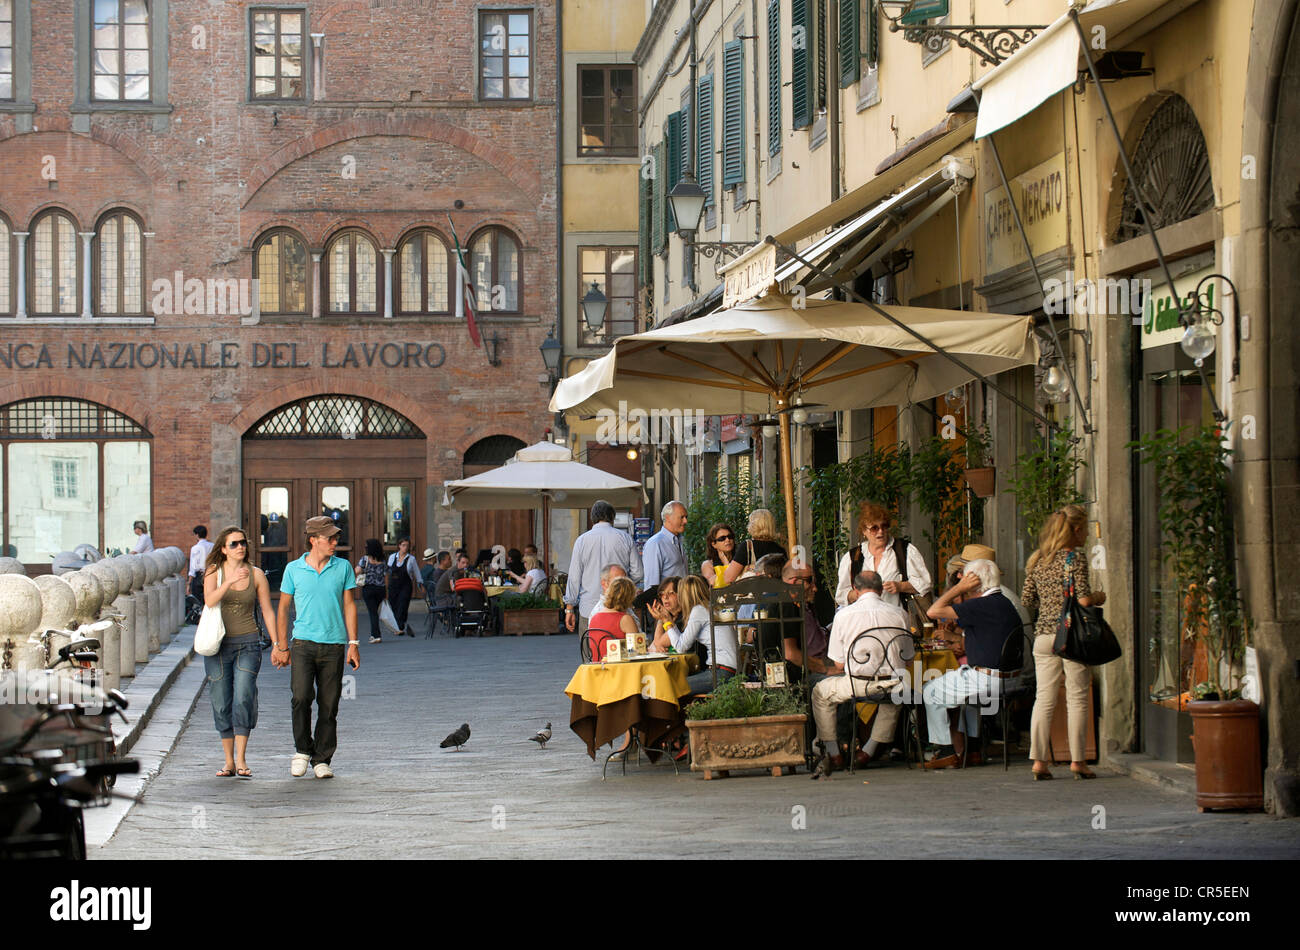 Italy, Tuscany, Lucca, Piazza San Michele - Stock Image